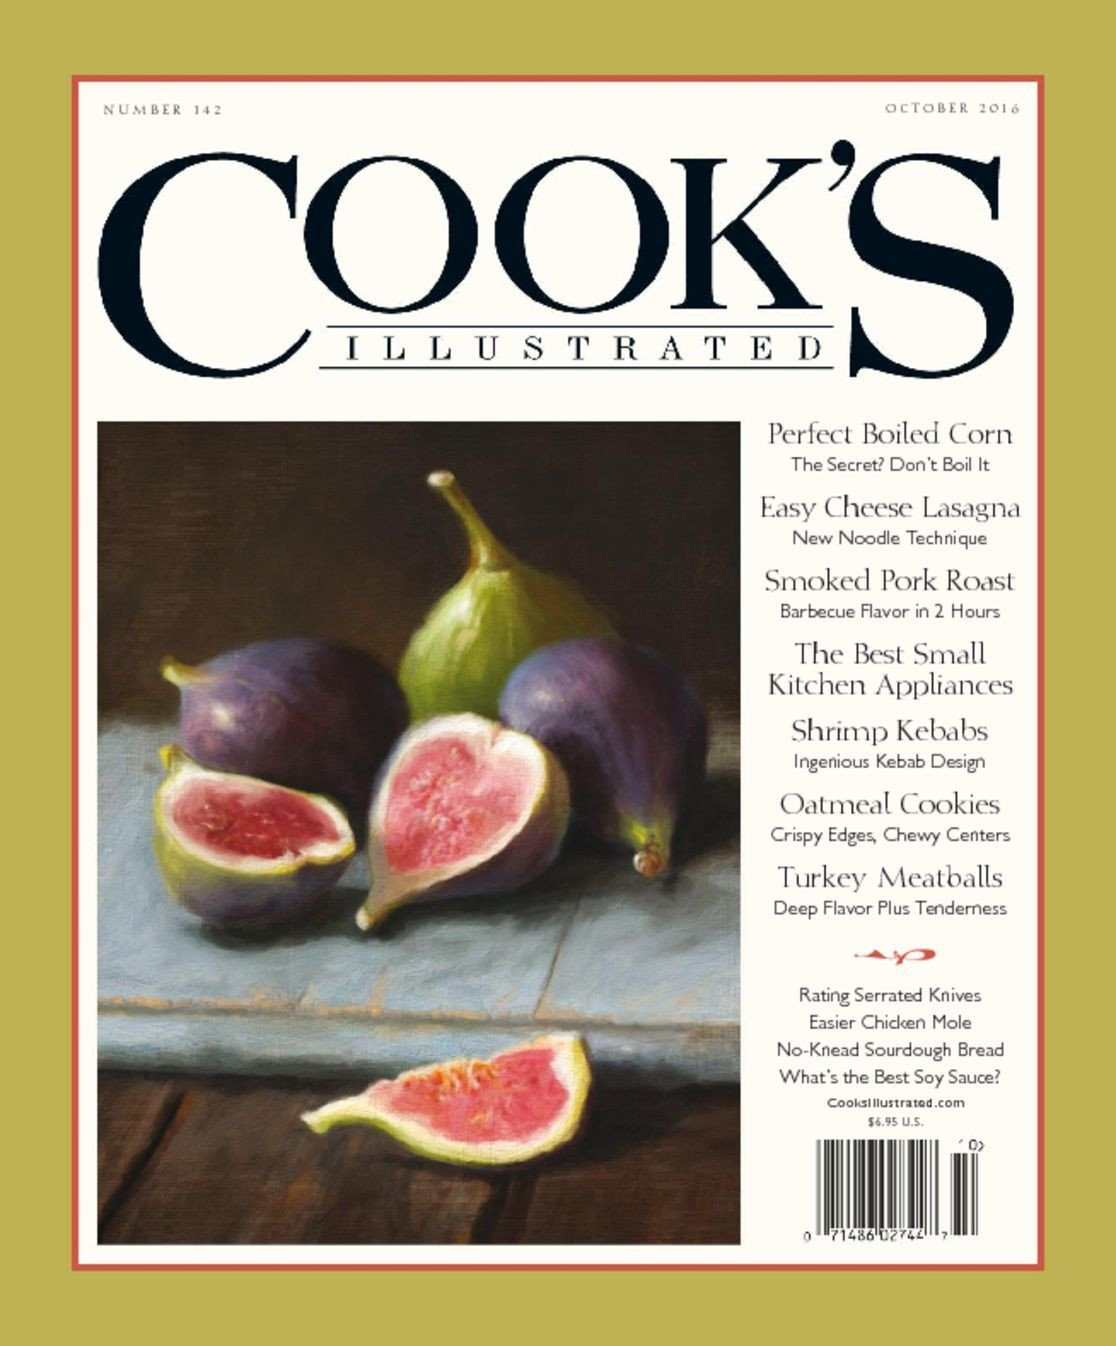 Cook's Illustrated - Cooking Magazines